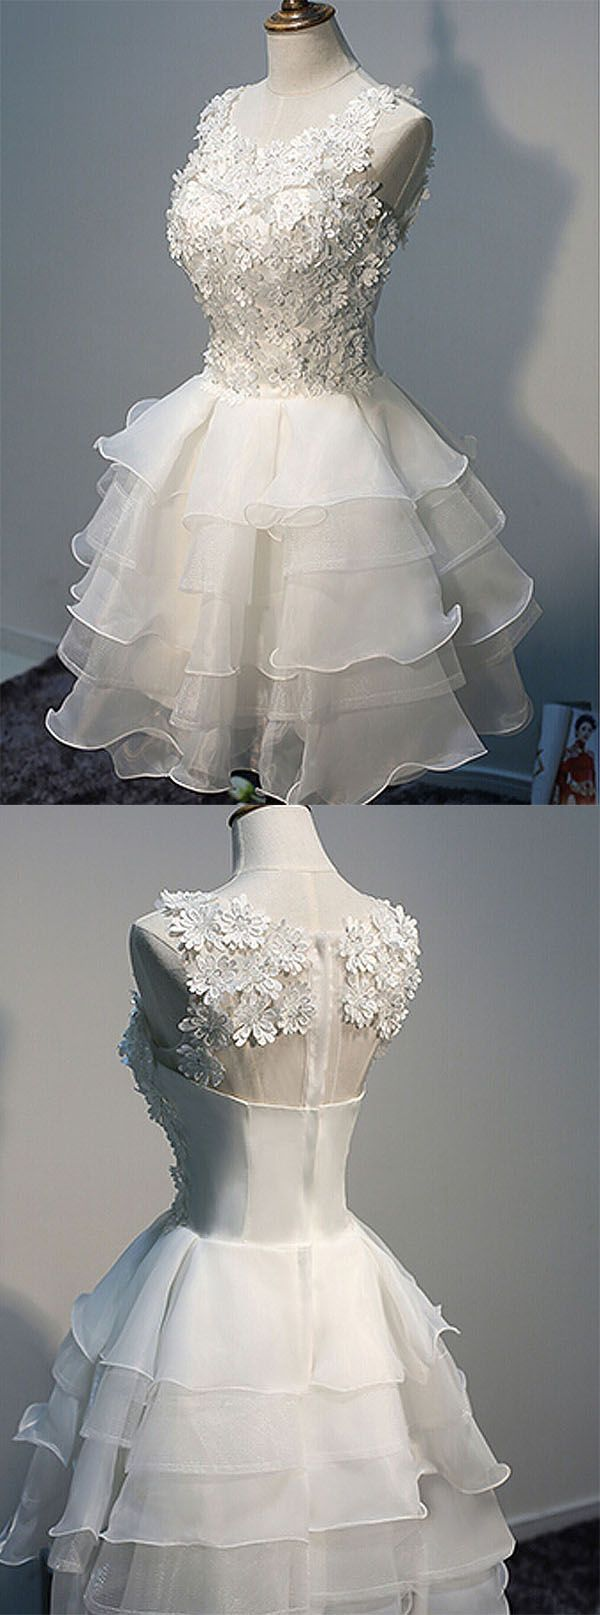 A-line Scoop Knee-length Ivory Organza Homecoming Dress With Appliques